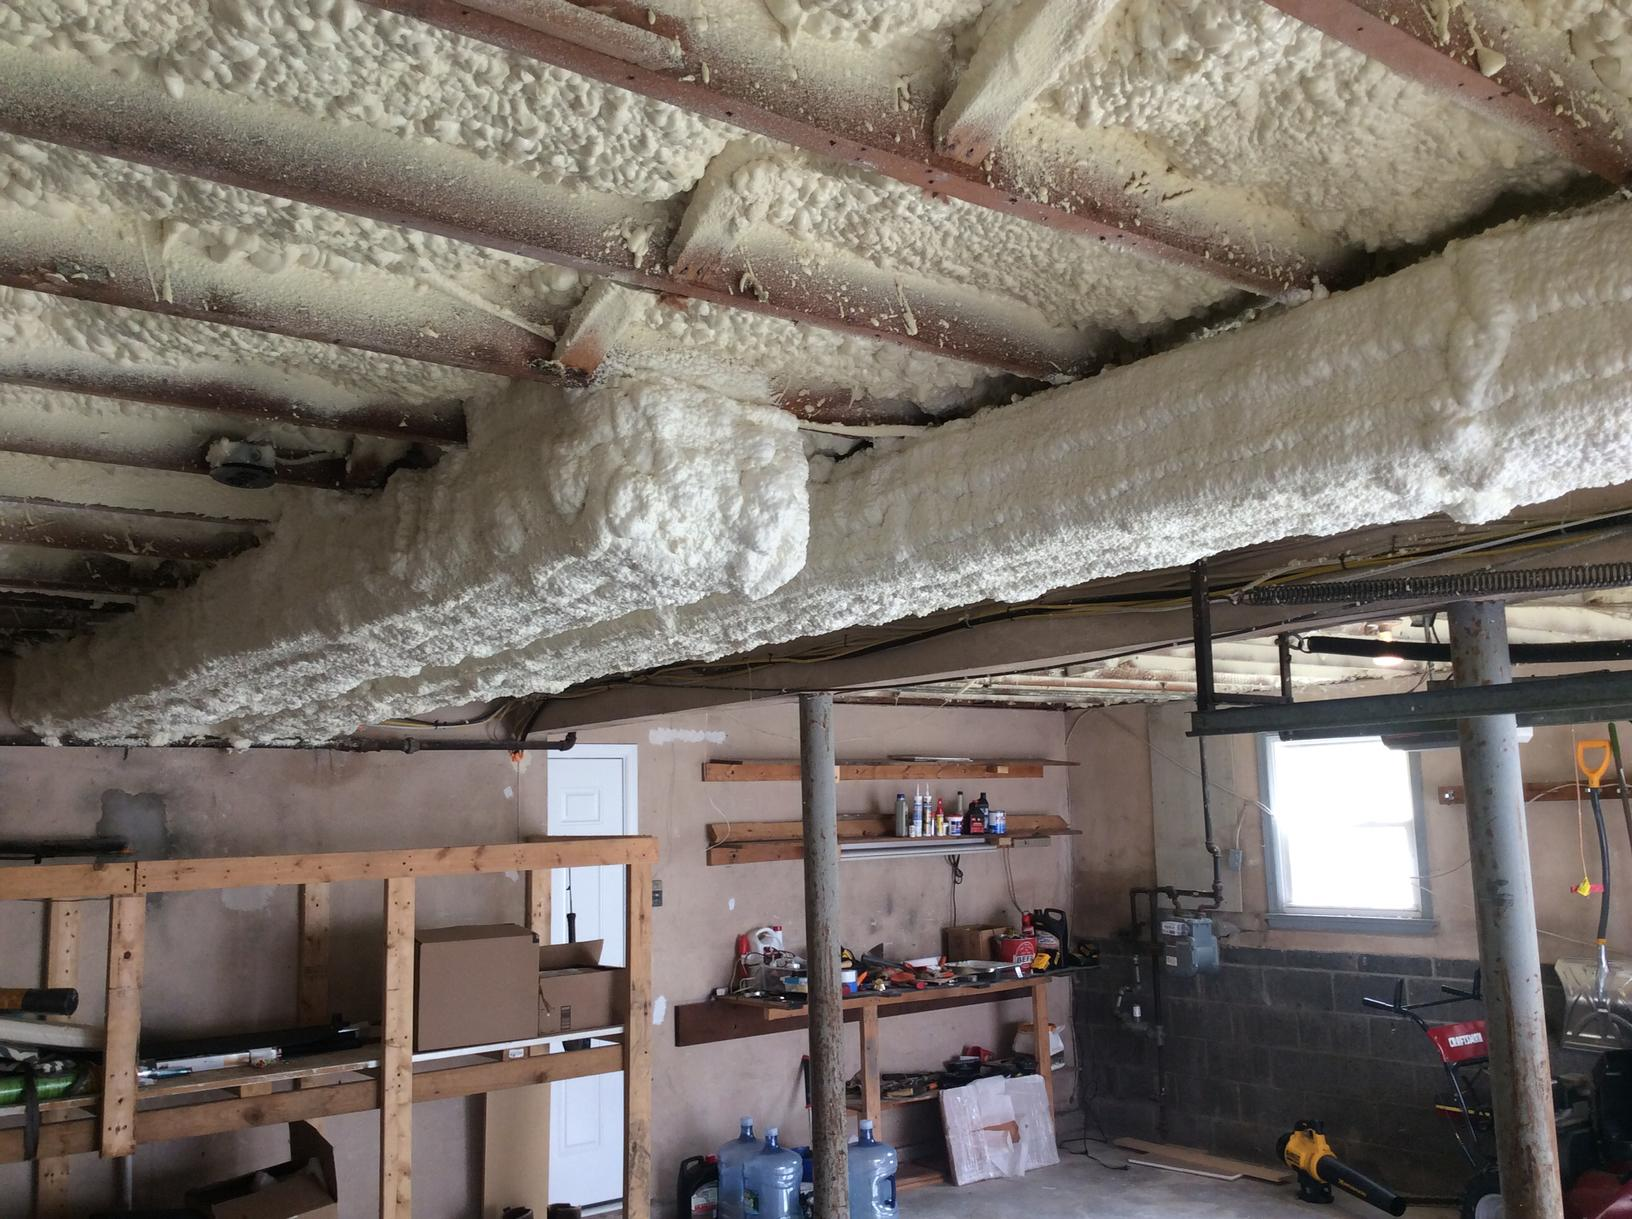 Duct Work Insulation in Stirling, NJ